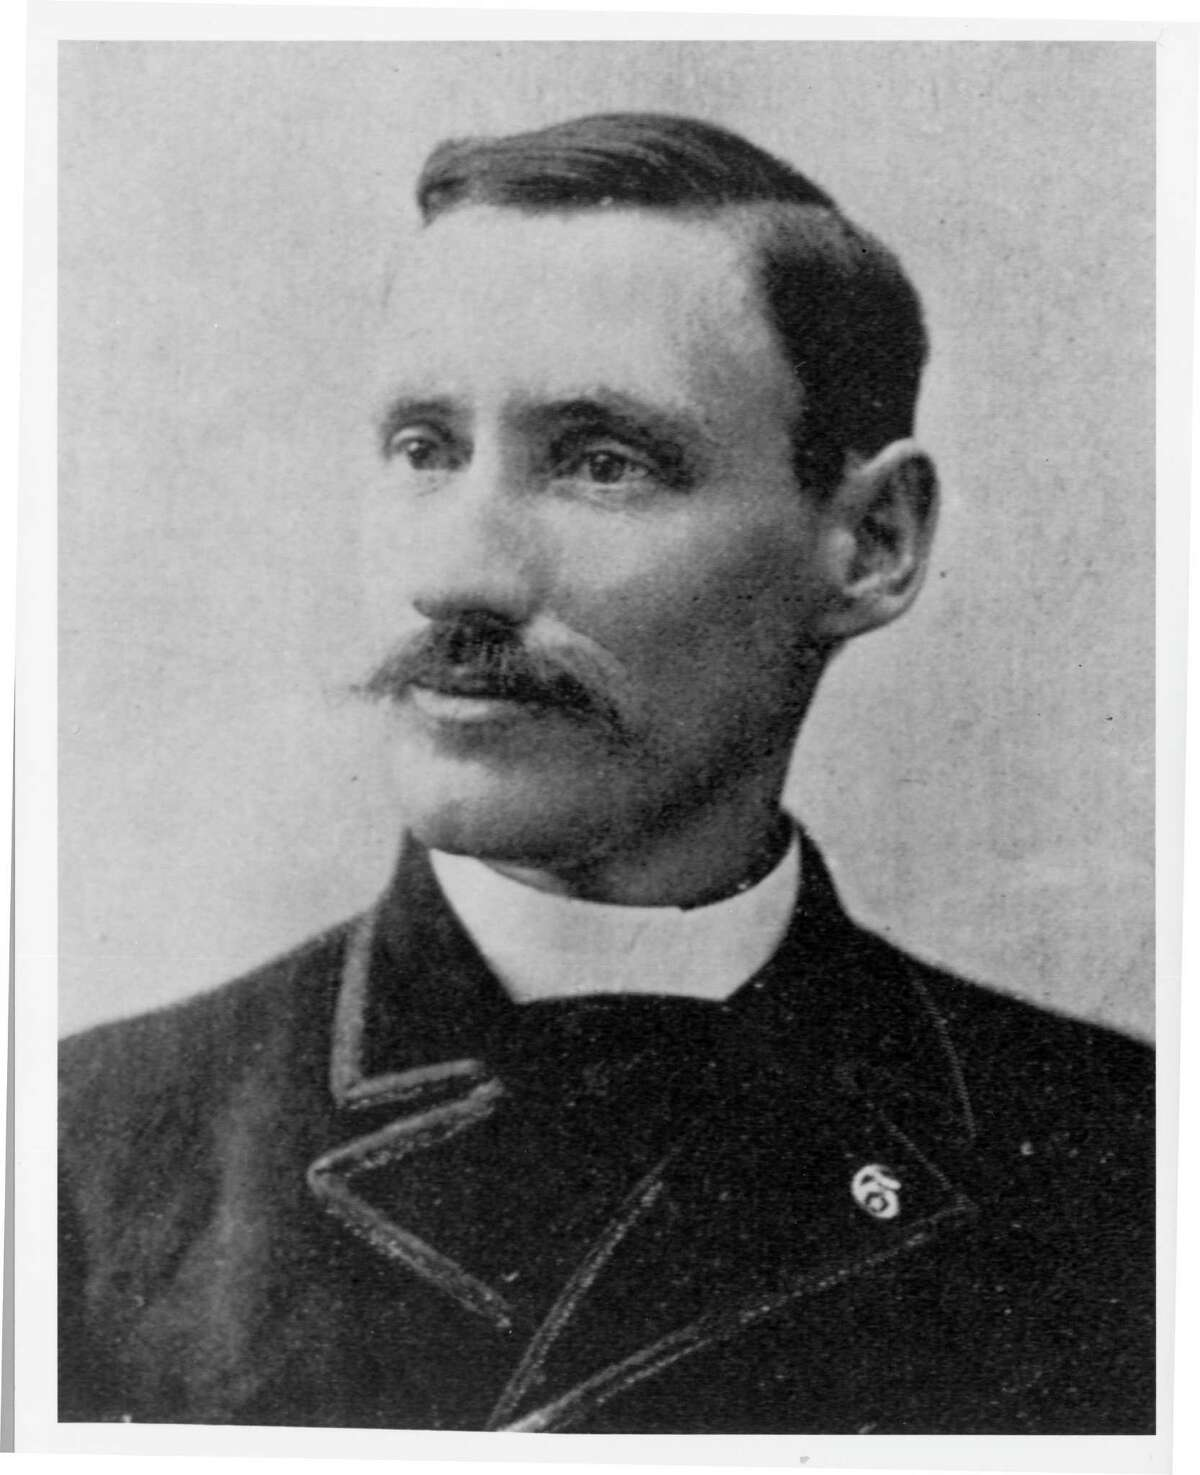 A recently discovered portrait of Isaac Cline, Galveston chief U.S. Bureau Meterologist circa 1900. Cline thought Galveston could withstand a hurricane and the shallow waters along the beach would absorb much of the impact. Cline lost his wife when the water swept away his home. CREDIT: Rosenberg Library, Galveston, Tx.